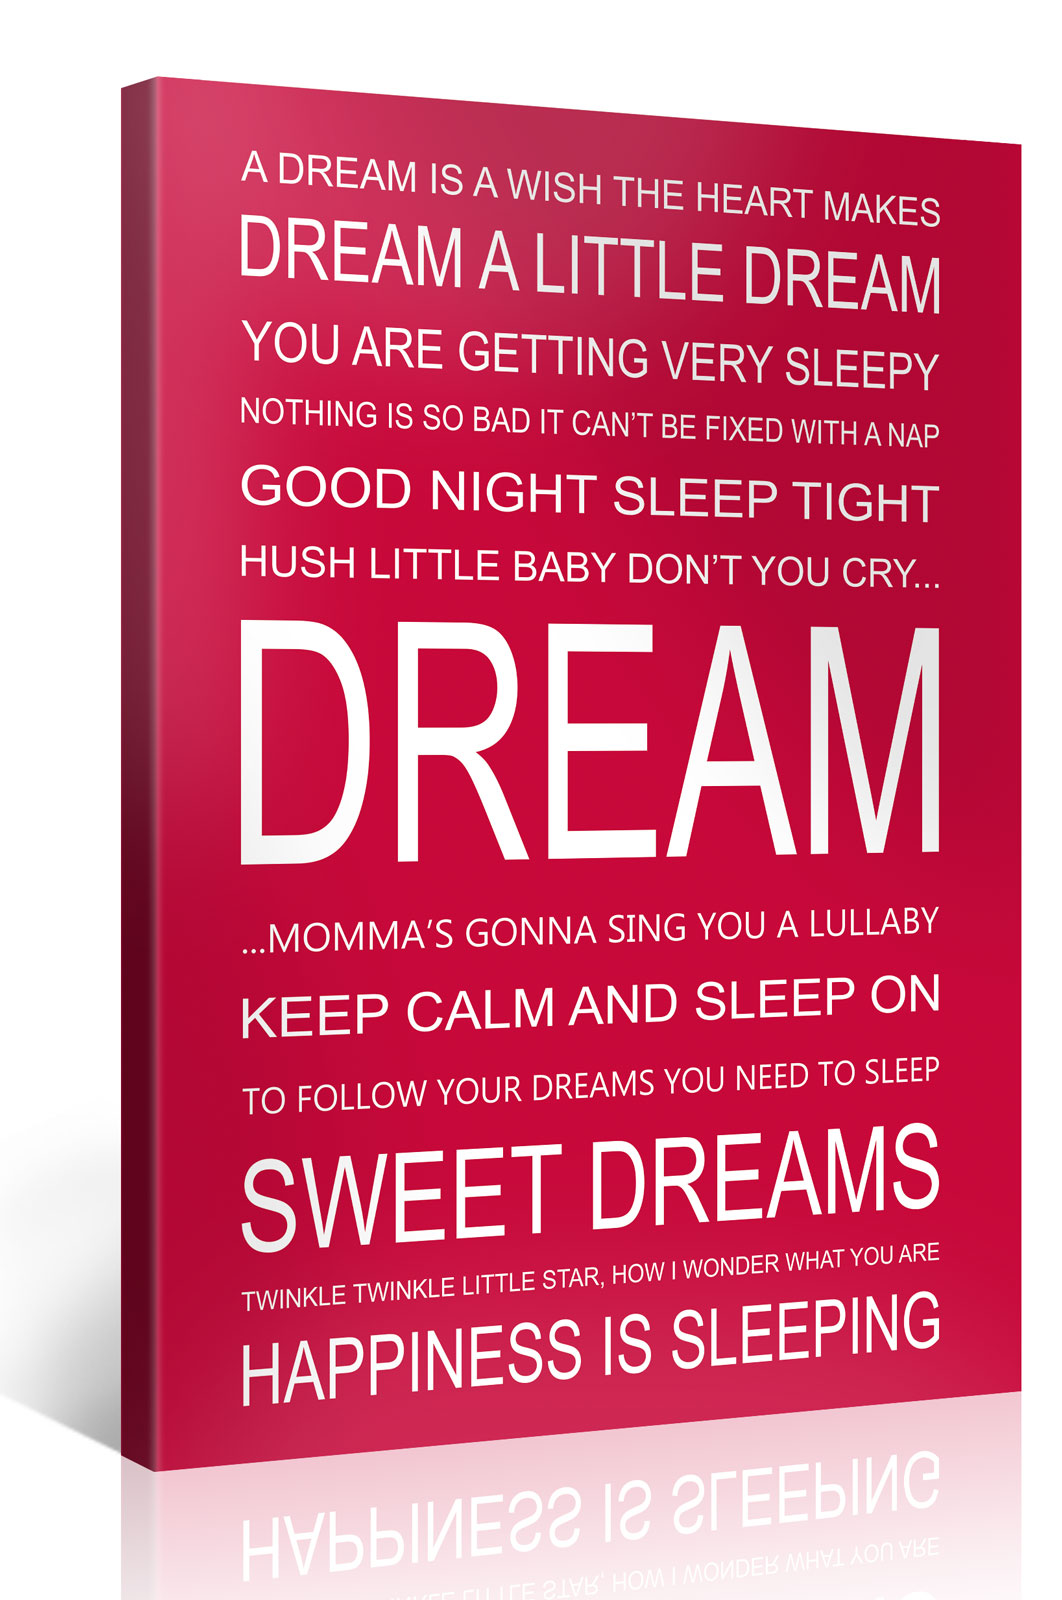 DREAM - 75x100cm Motivation Text Leinwandbild #e7251